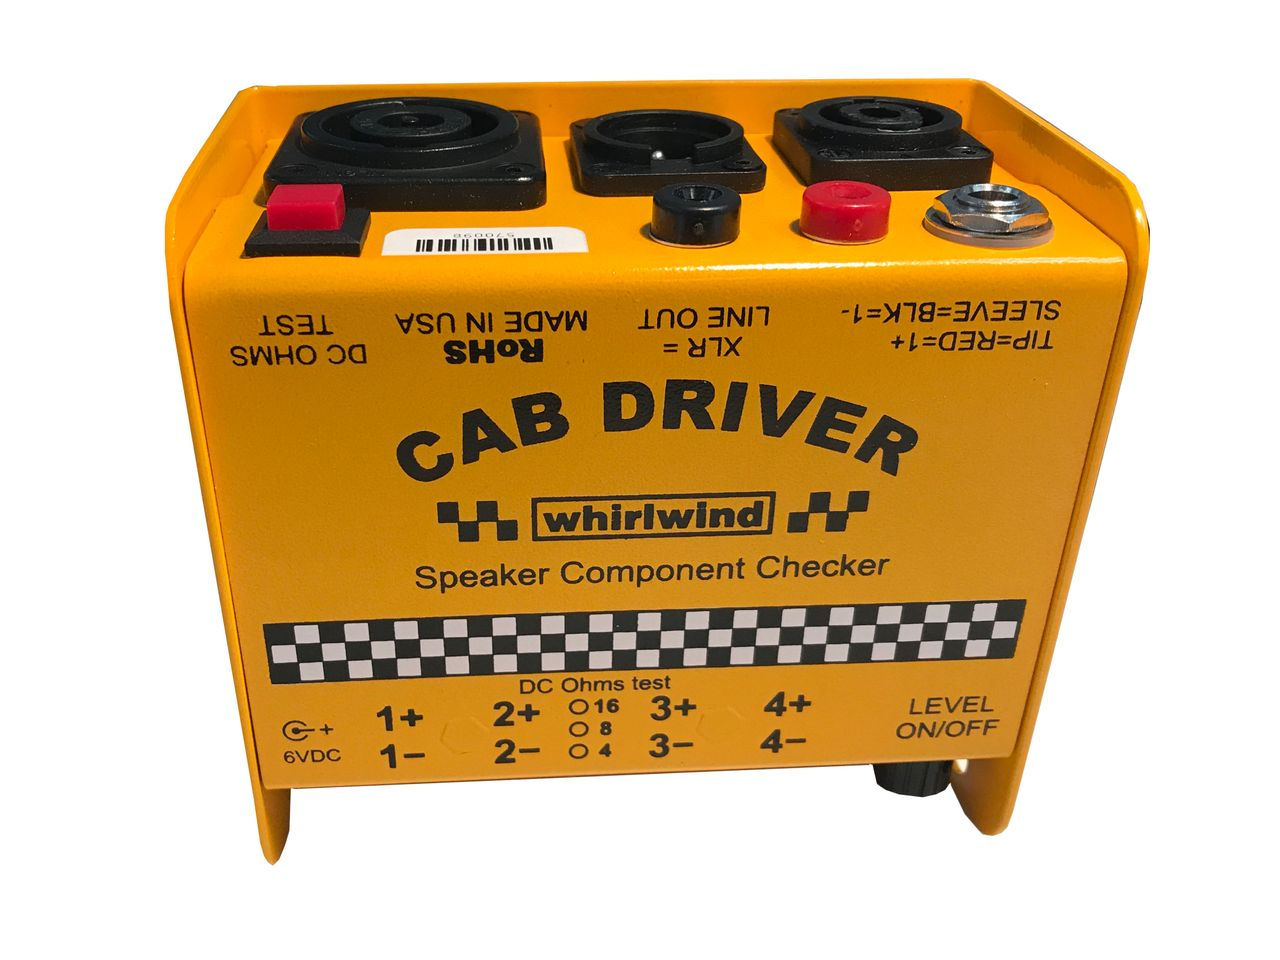 CAB DRIVER by Whirlwind Speaker Checker is at Hollywood Sound Systems